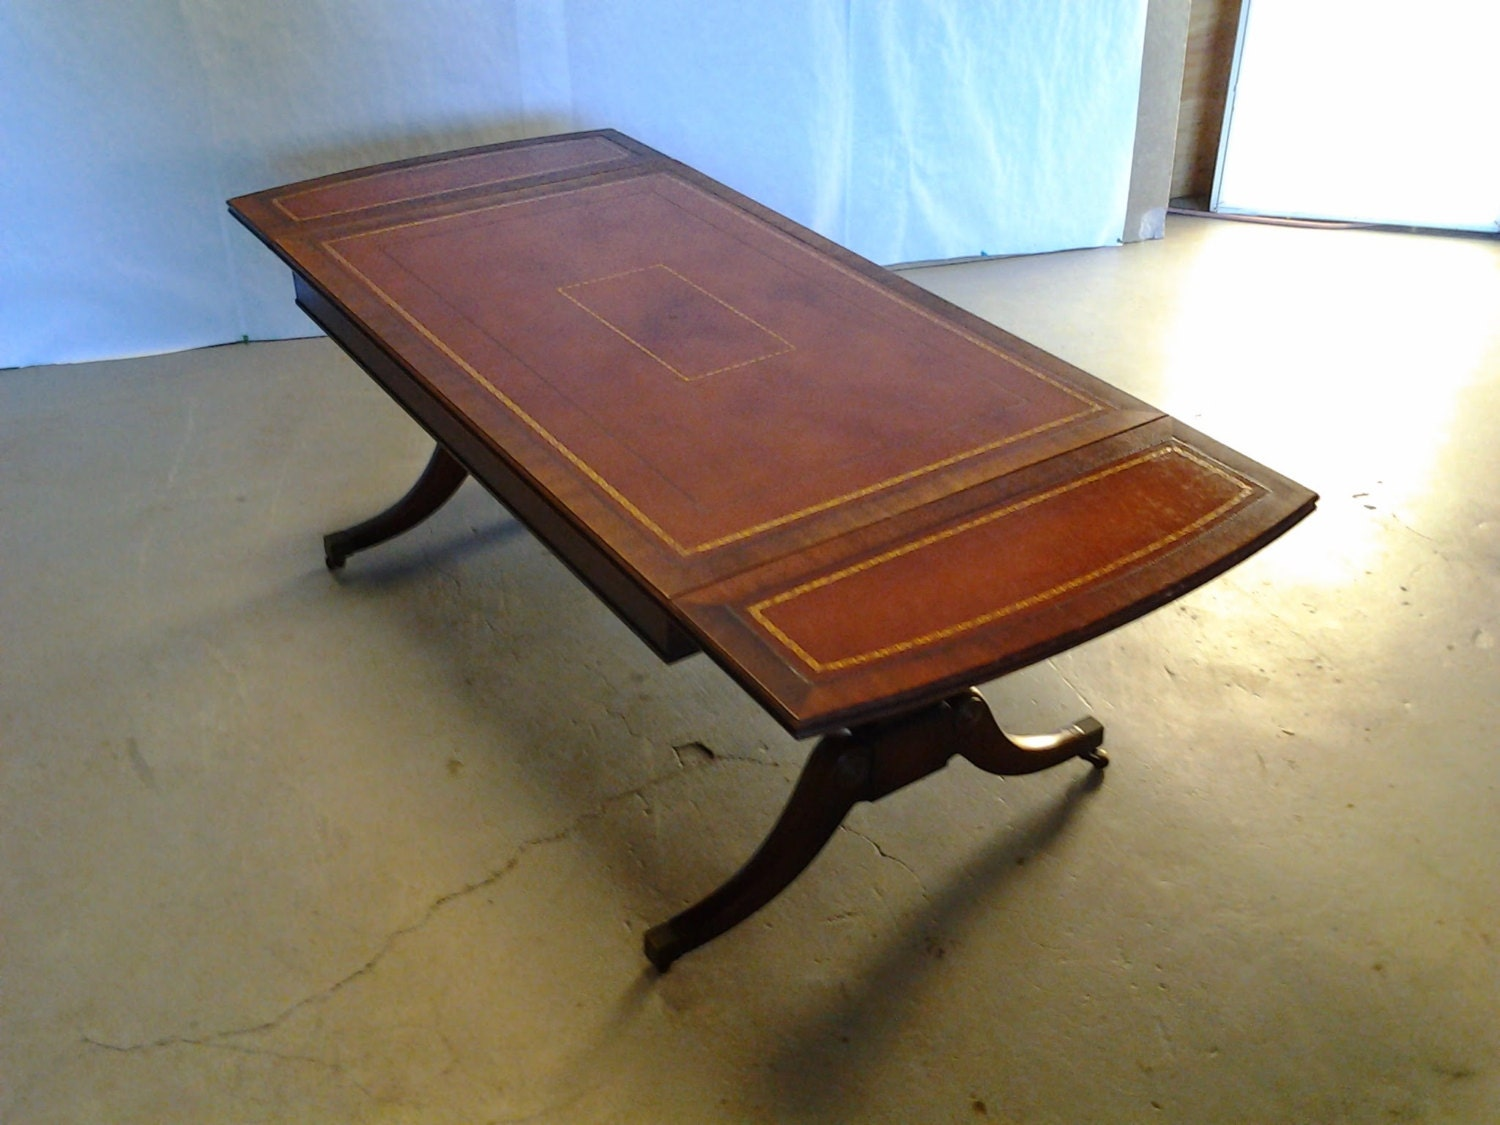 Antique Mahogany Coffee Table Heritage Henredon by BoardwalkRev